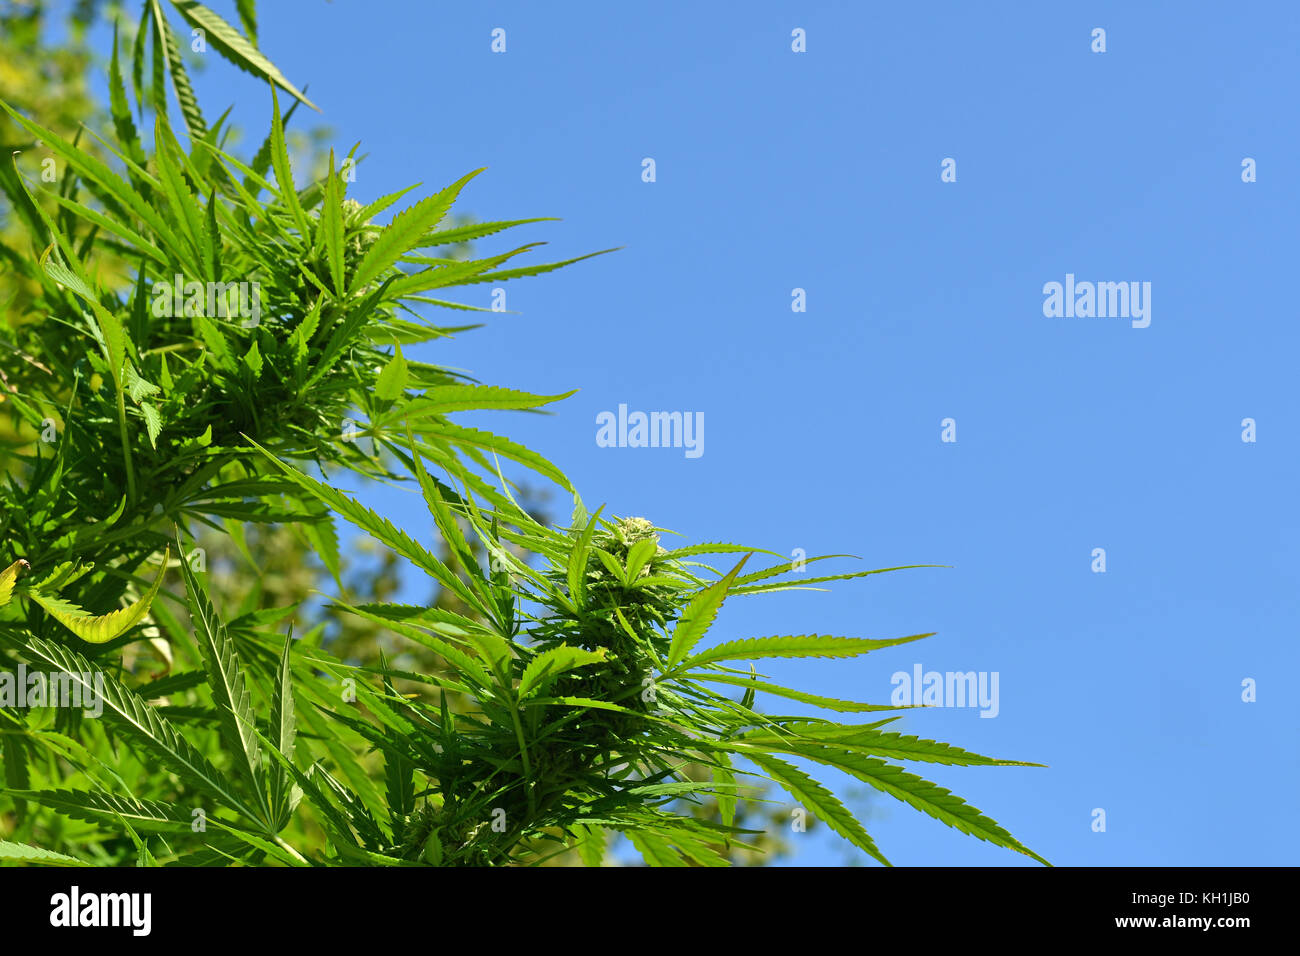 Cannabis plant at flowering stage growing outdoors - Stock Image